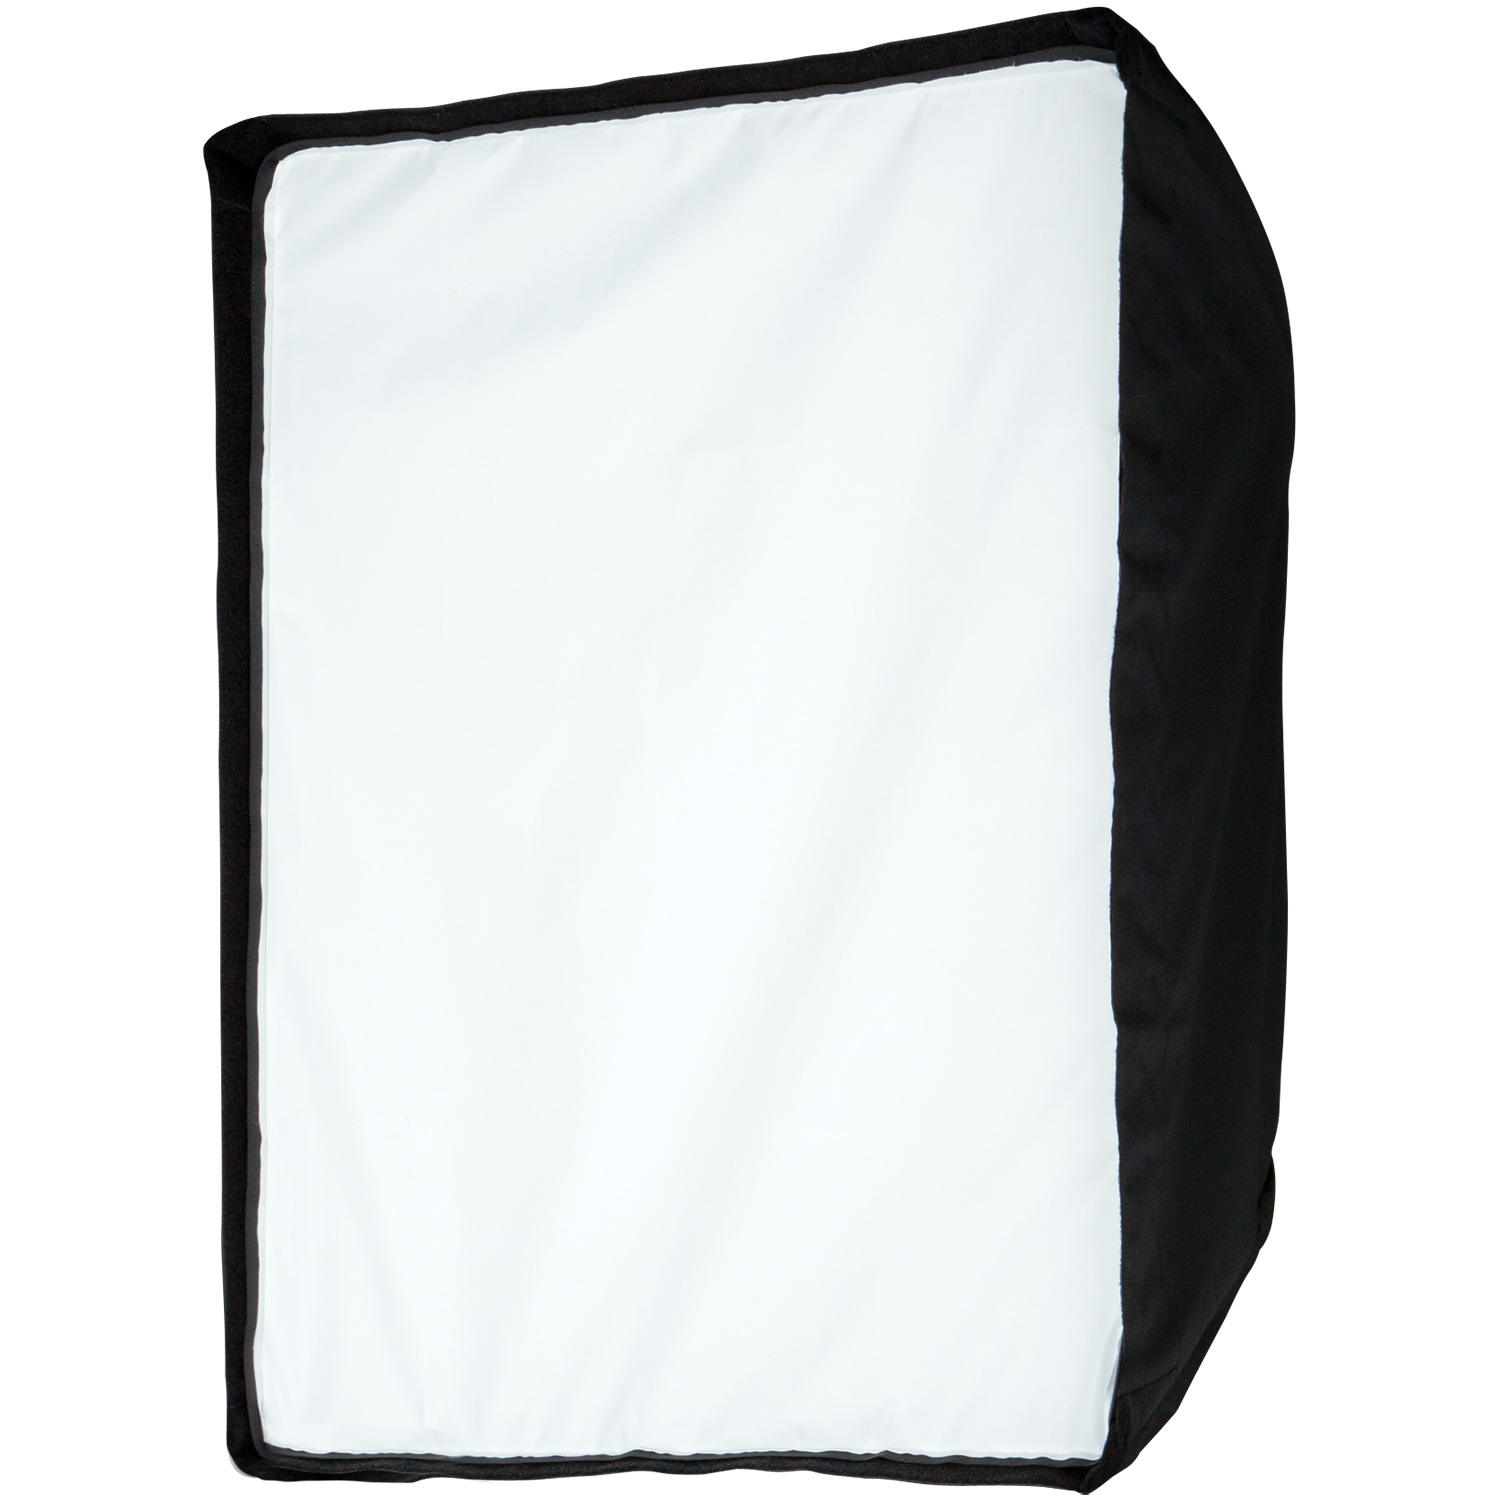 Pro 24-in. x 32-in. Softbox with Silver Interior